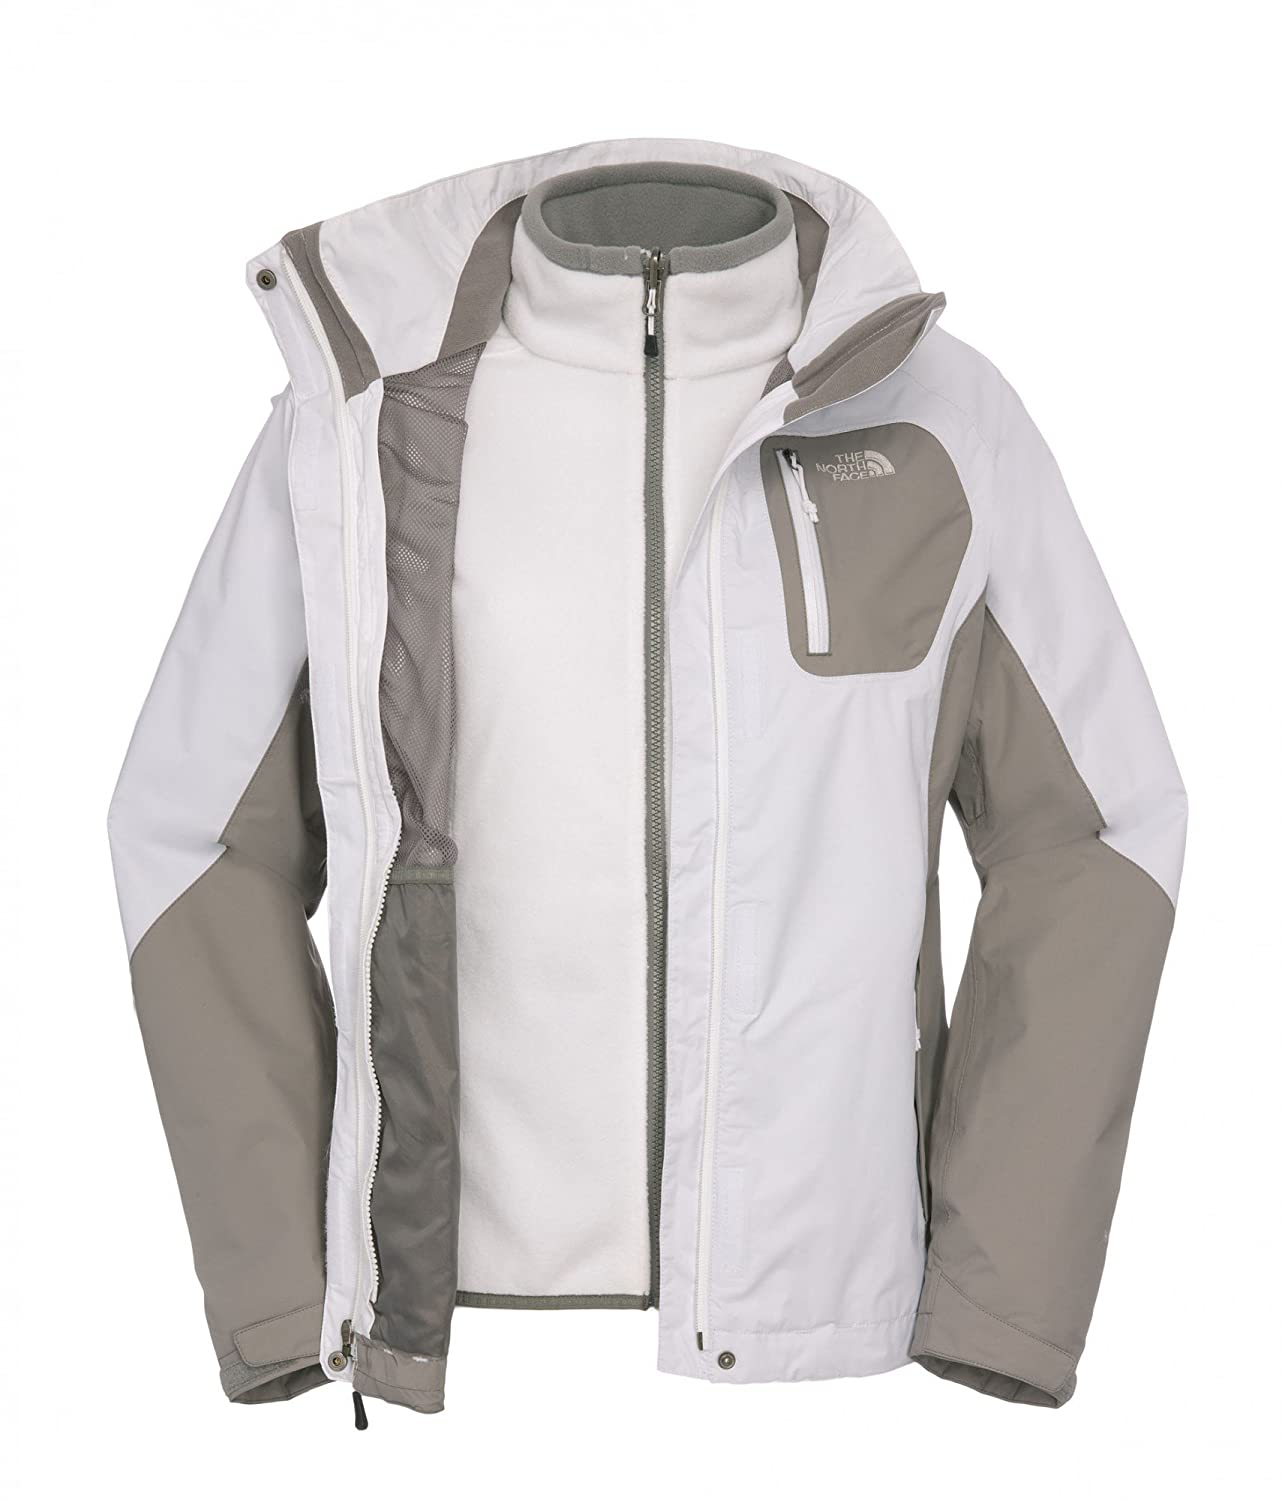 The North Face Damen Jacke Zenith Triclimate A6QB jetzt kaufen